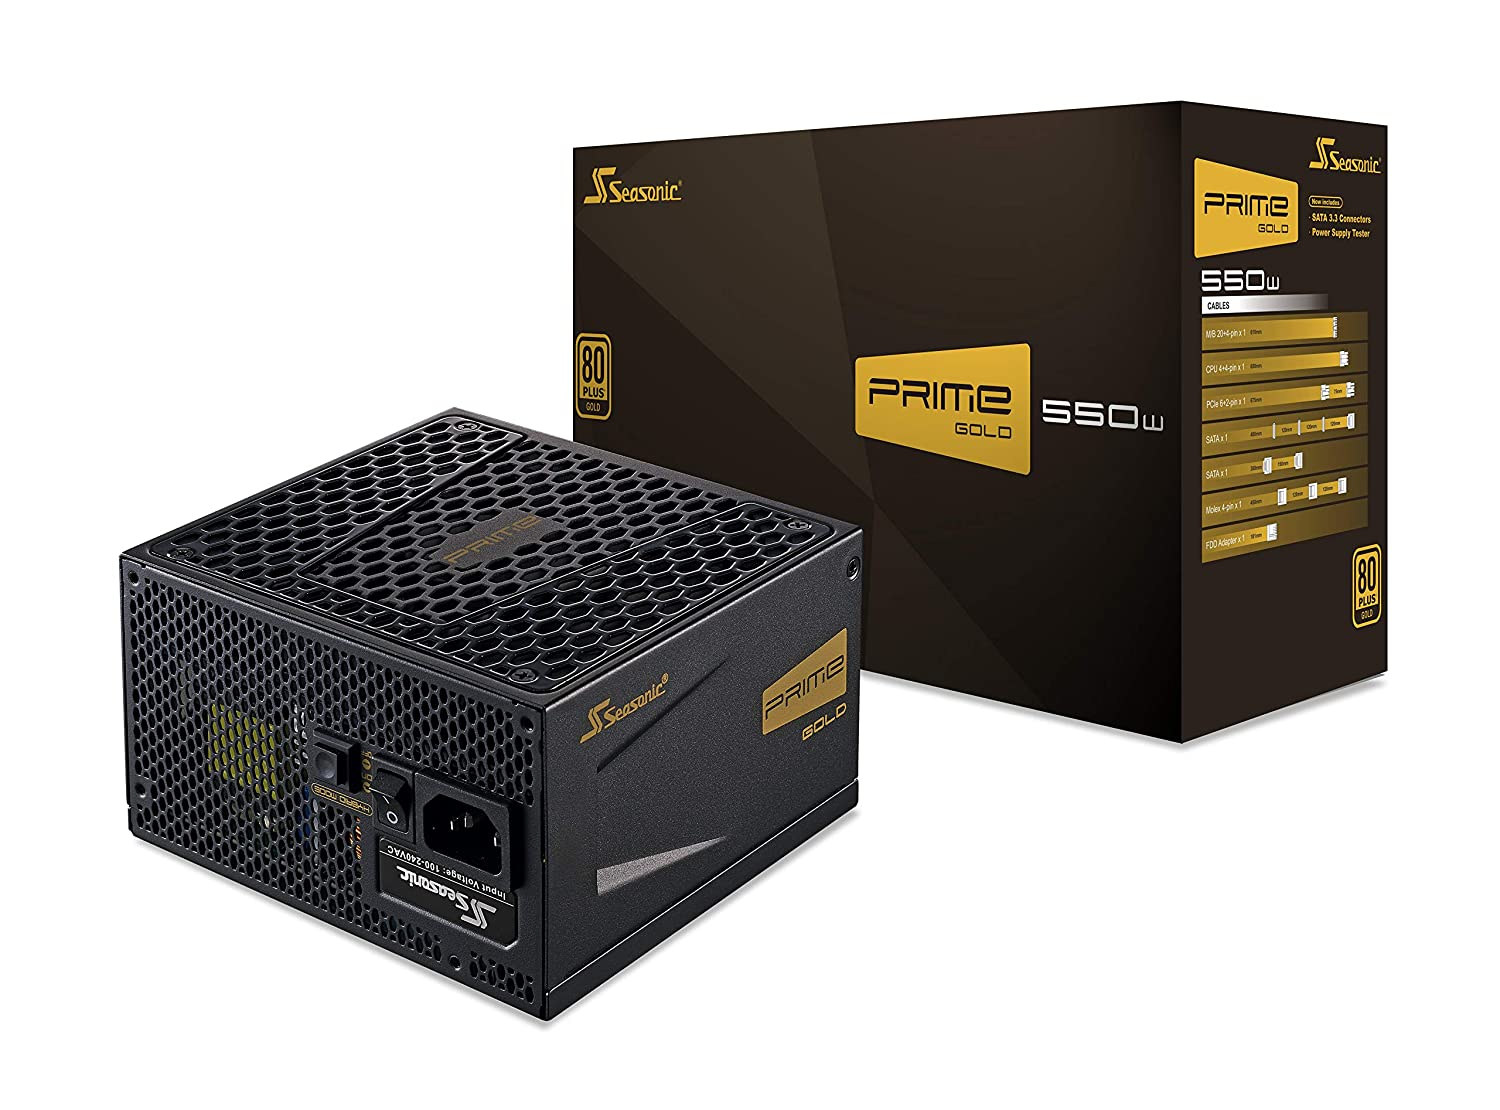 Seasonic PRIME 550 Gold SSR-550GD2 550W 80+ Gold ATX12V & EPS12V Full  Modular 135mm FDB Fan Power On Self Tester 12 Year Warranty Power Supply